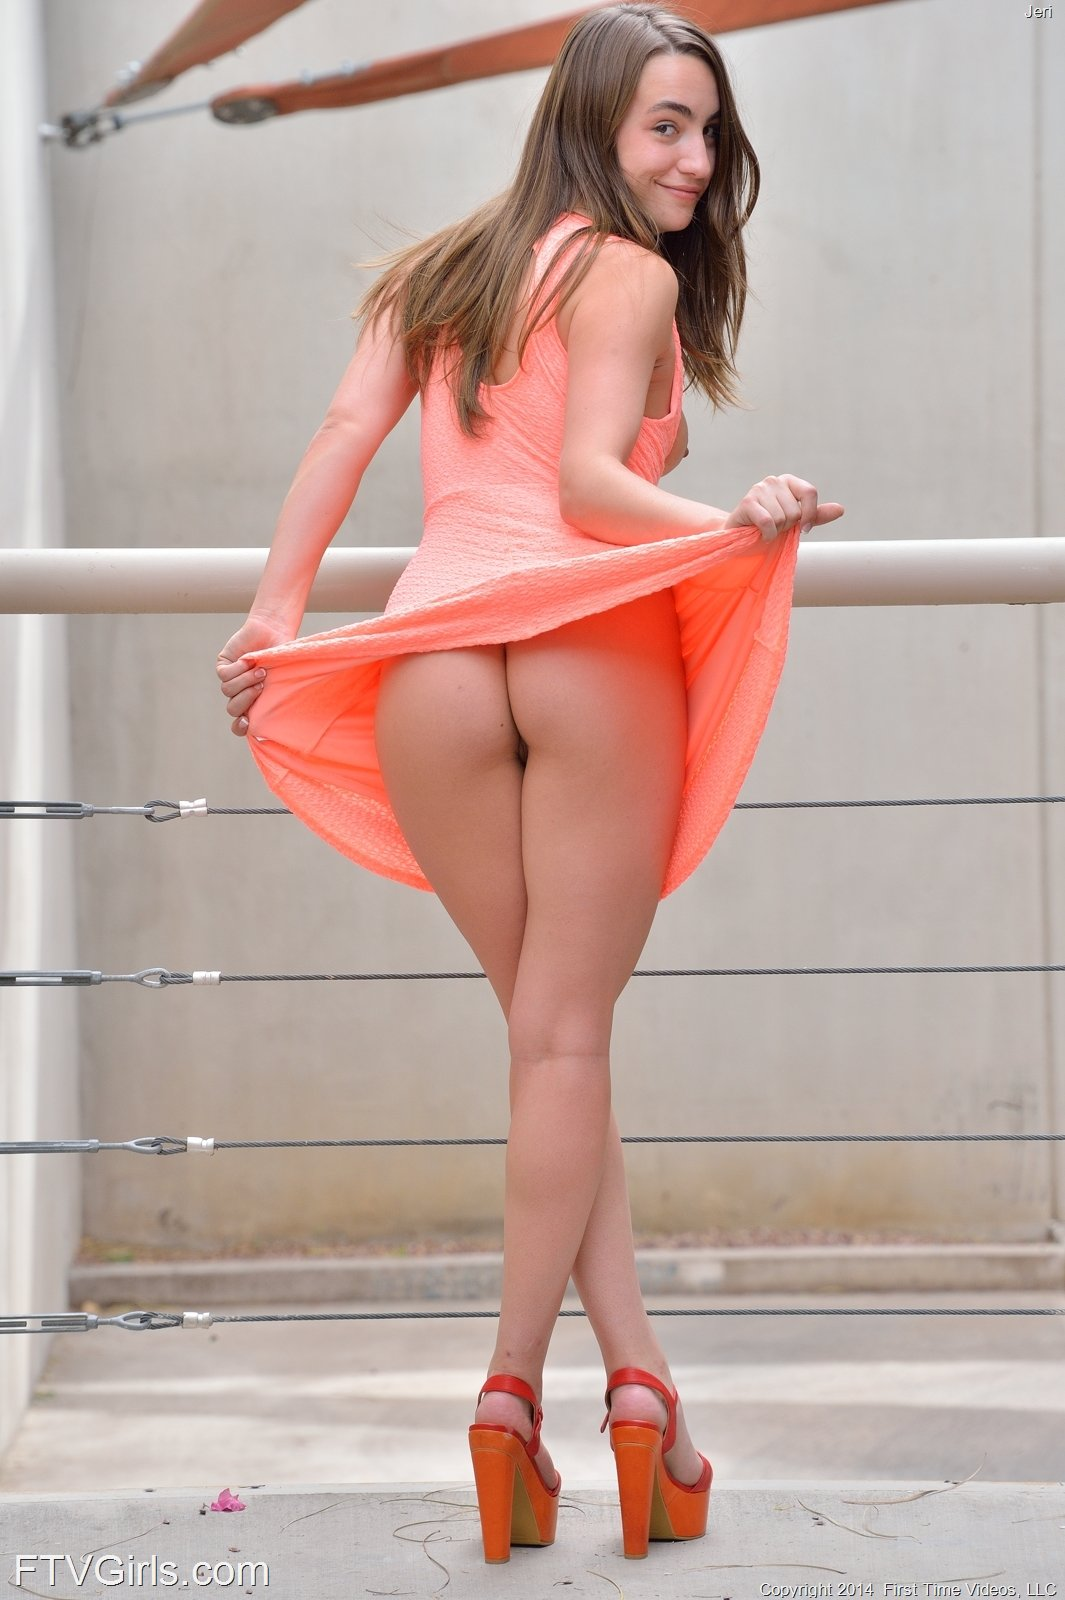 Jeri From Ftv Girls Showing Upskirts In Public 16 Photos -6250